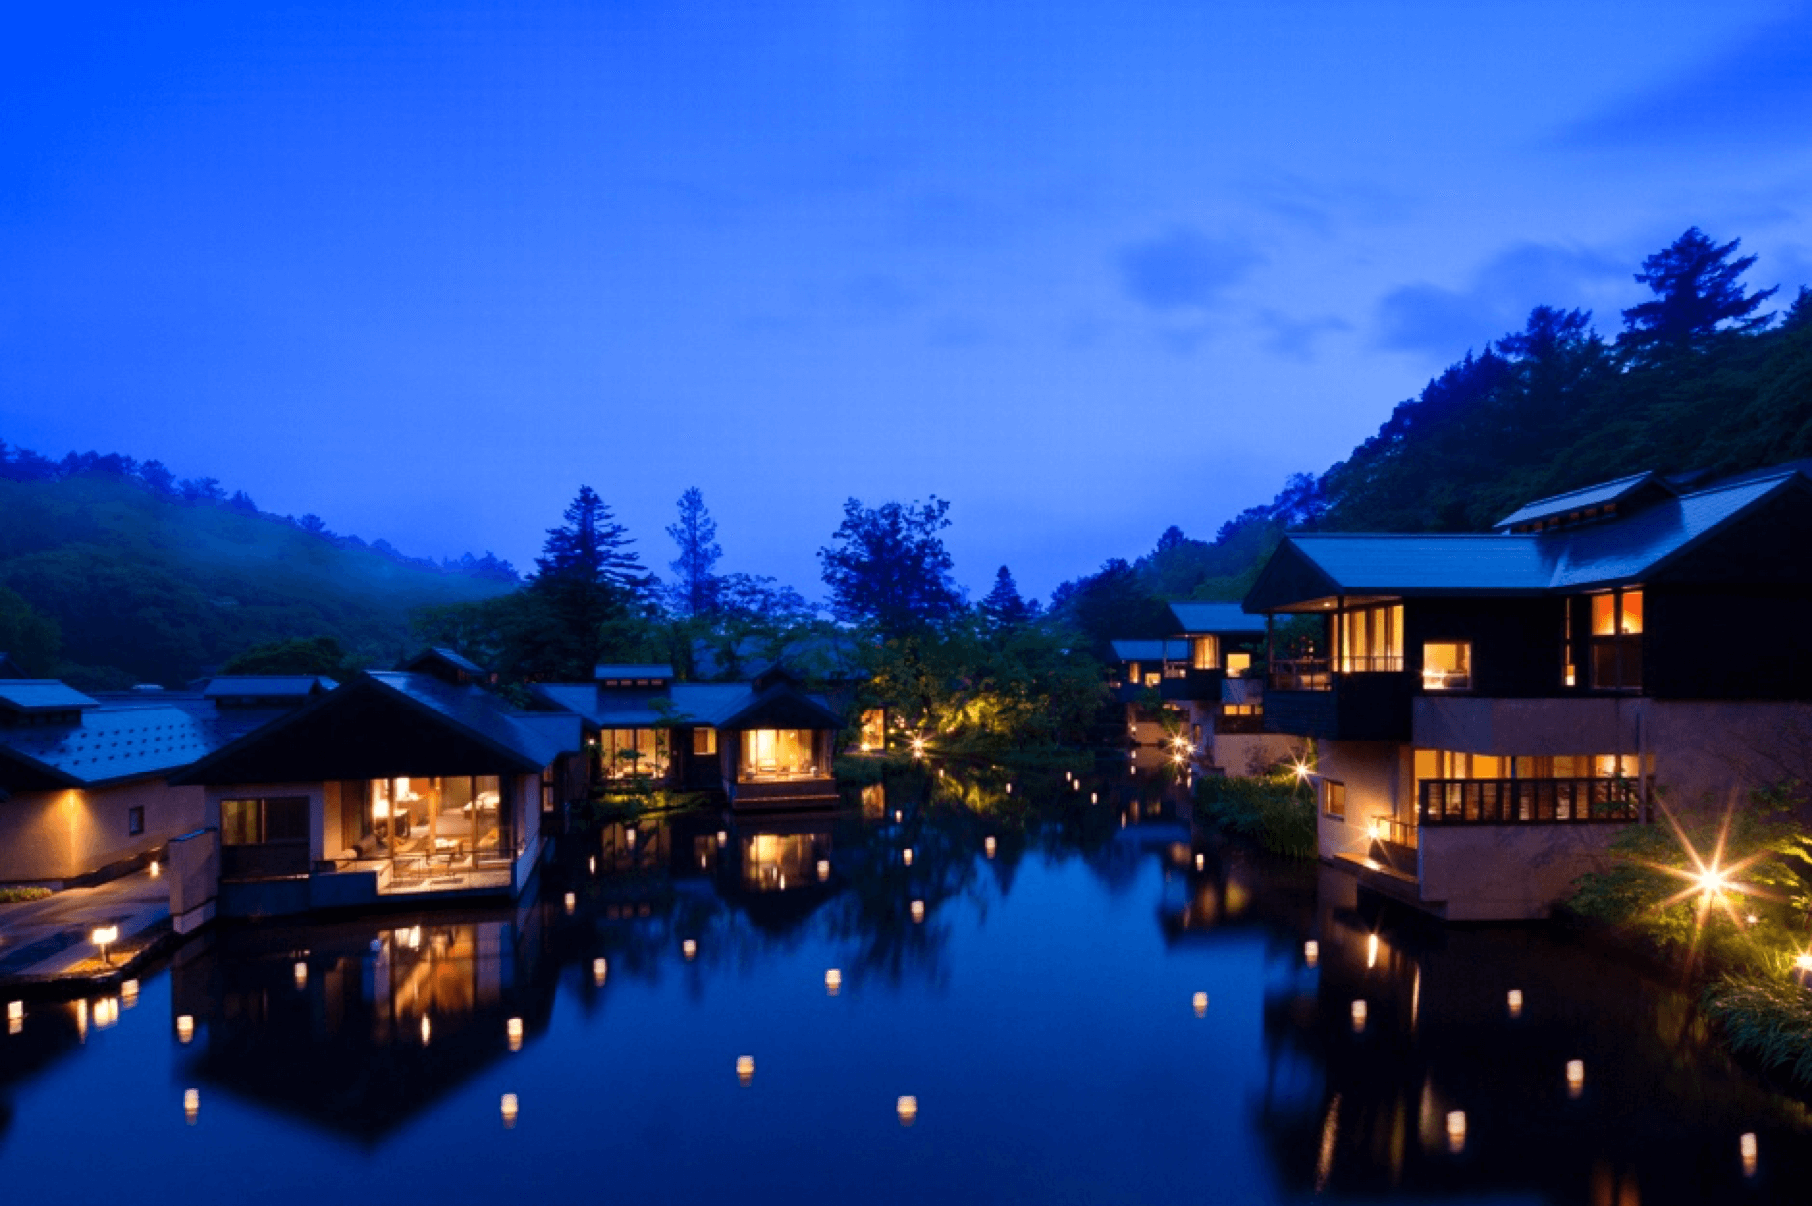 Hoshino Resorts - Kintone Customer Story